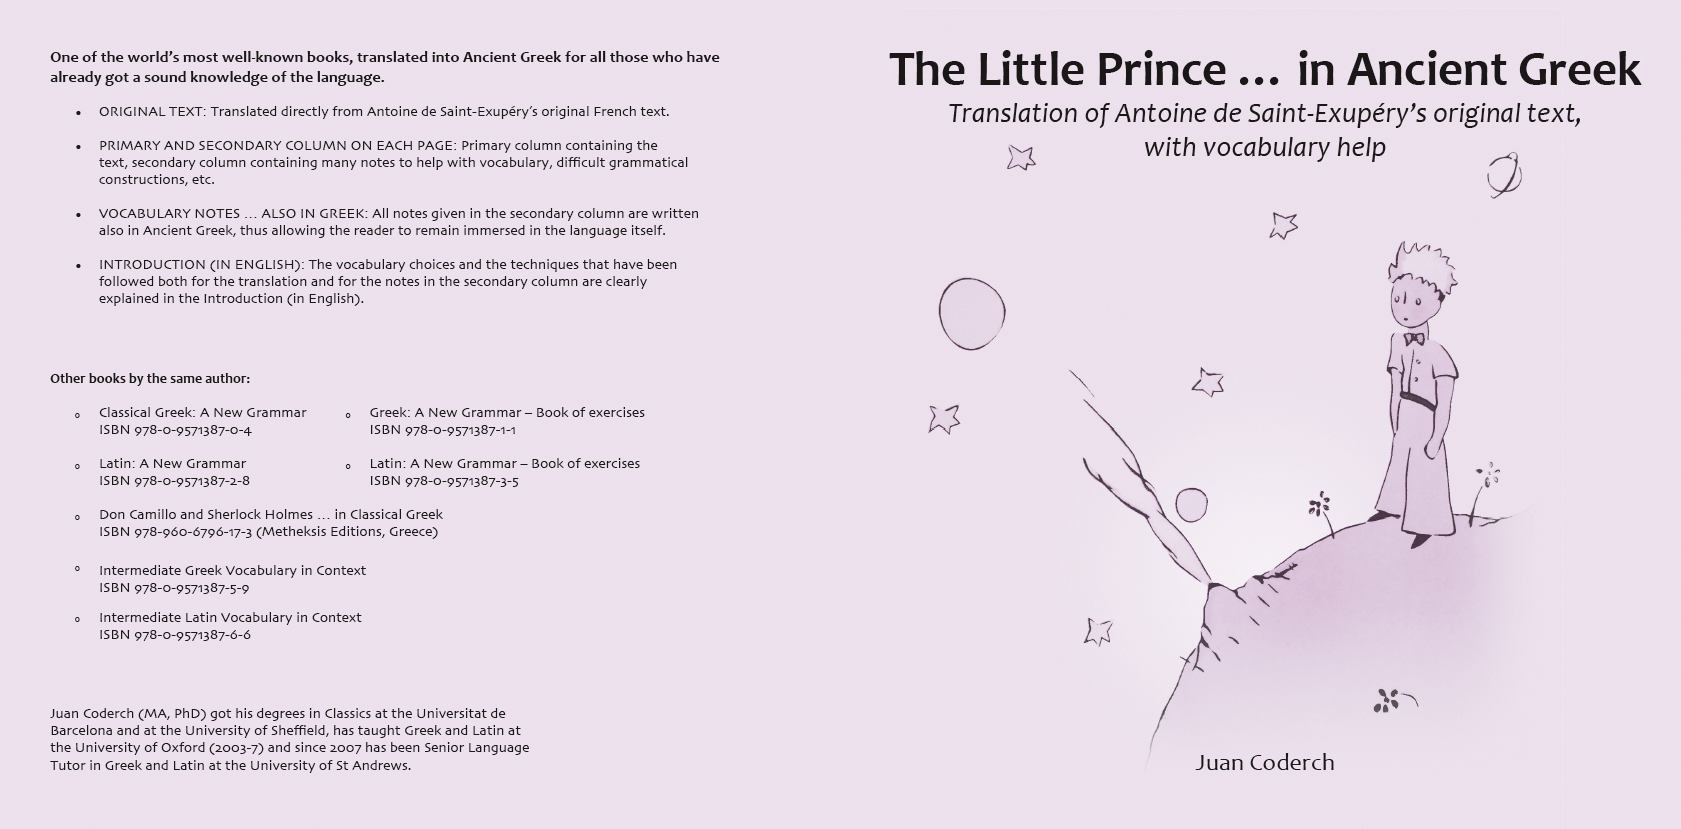 The Little Prince In Ancient Greek Classical Greek A New Grammar Latin A New Grammar